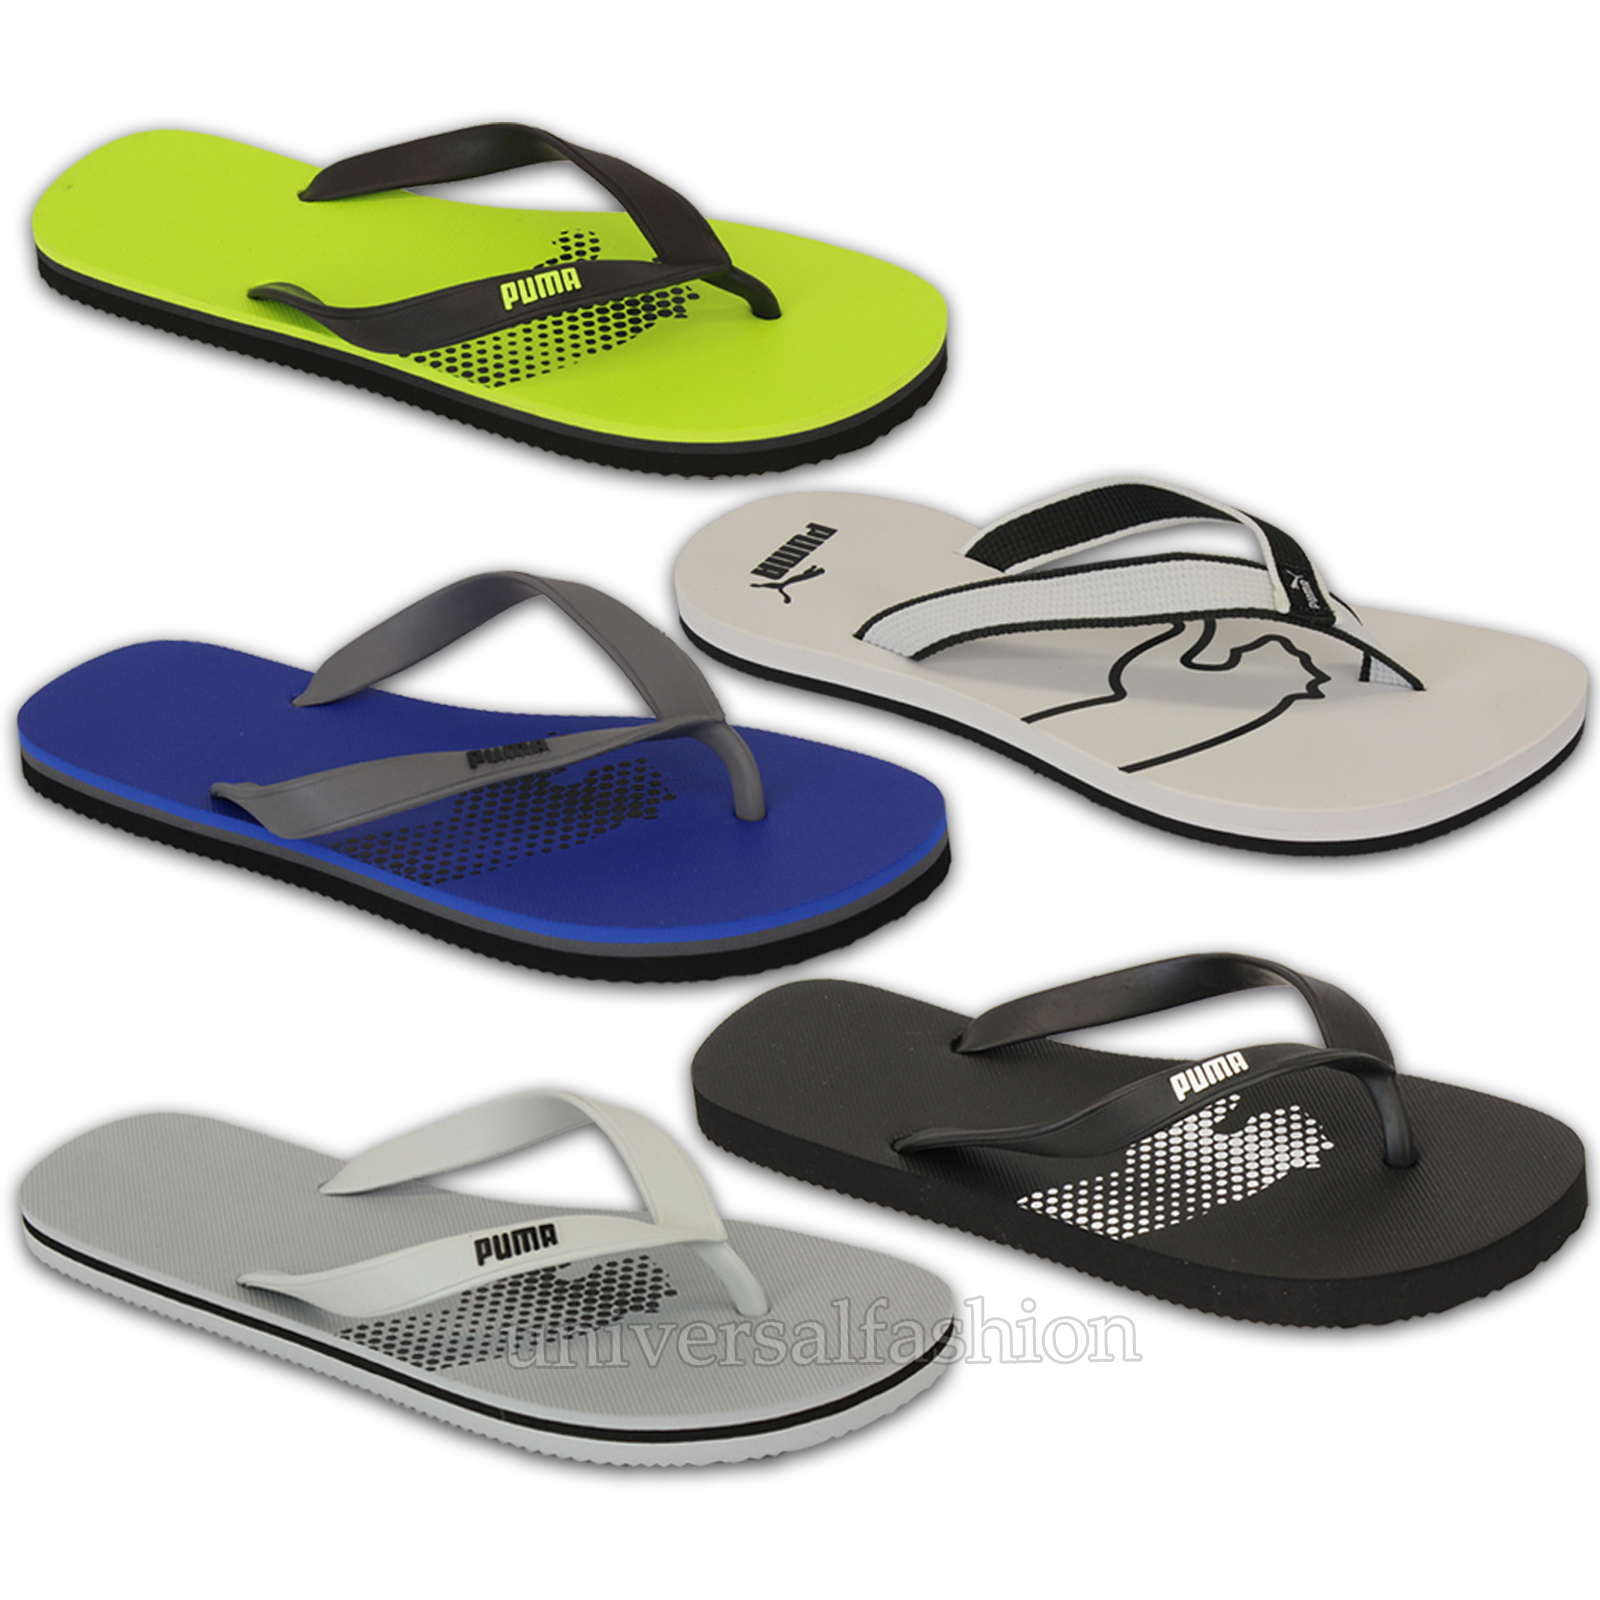 34569f704f7b4 Mens PUMA Flip Flops CAT Slippers Thong Walking Beach Holiday ...